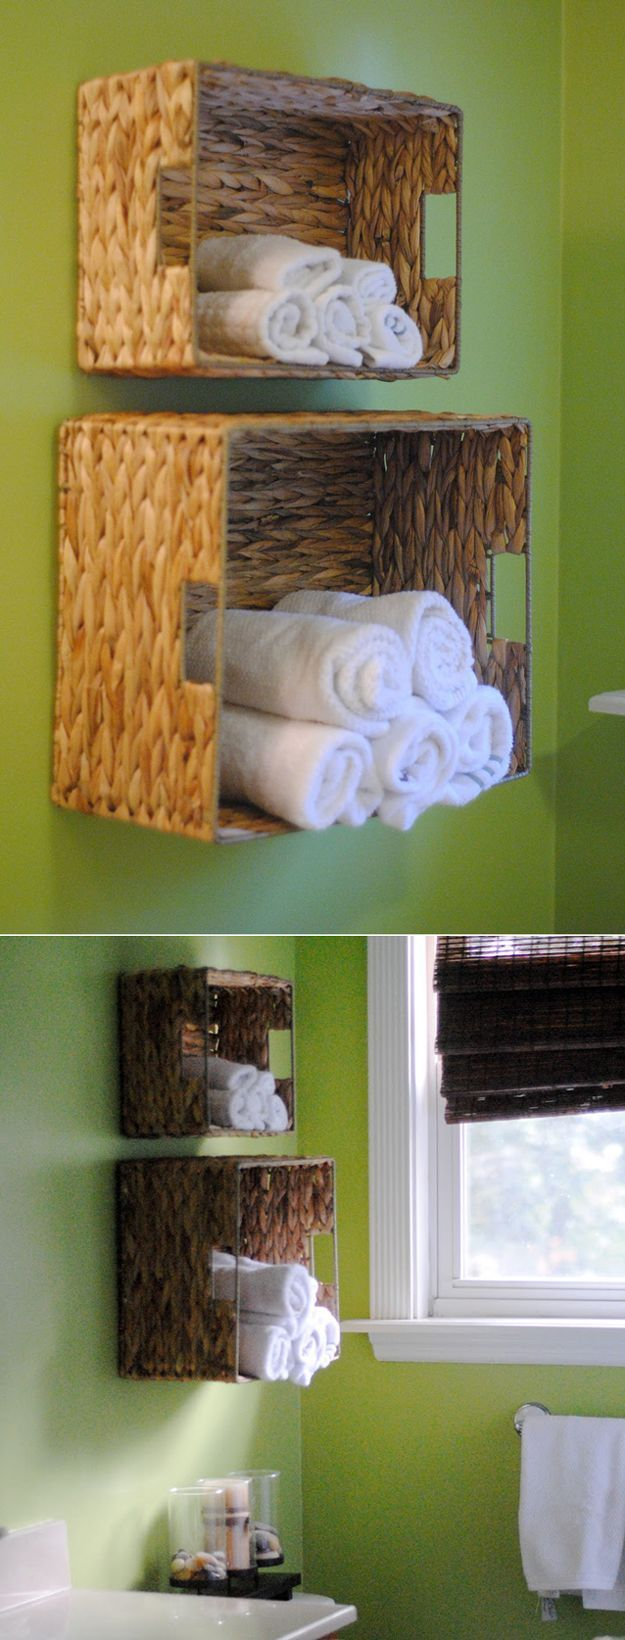 best 20+ bathroom hacks ideas on pinterest | hacks, life hacks